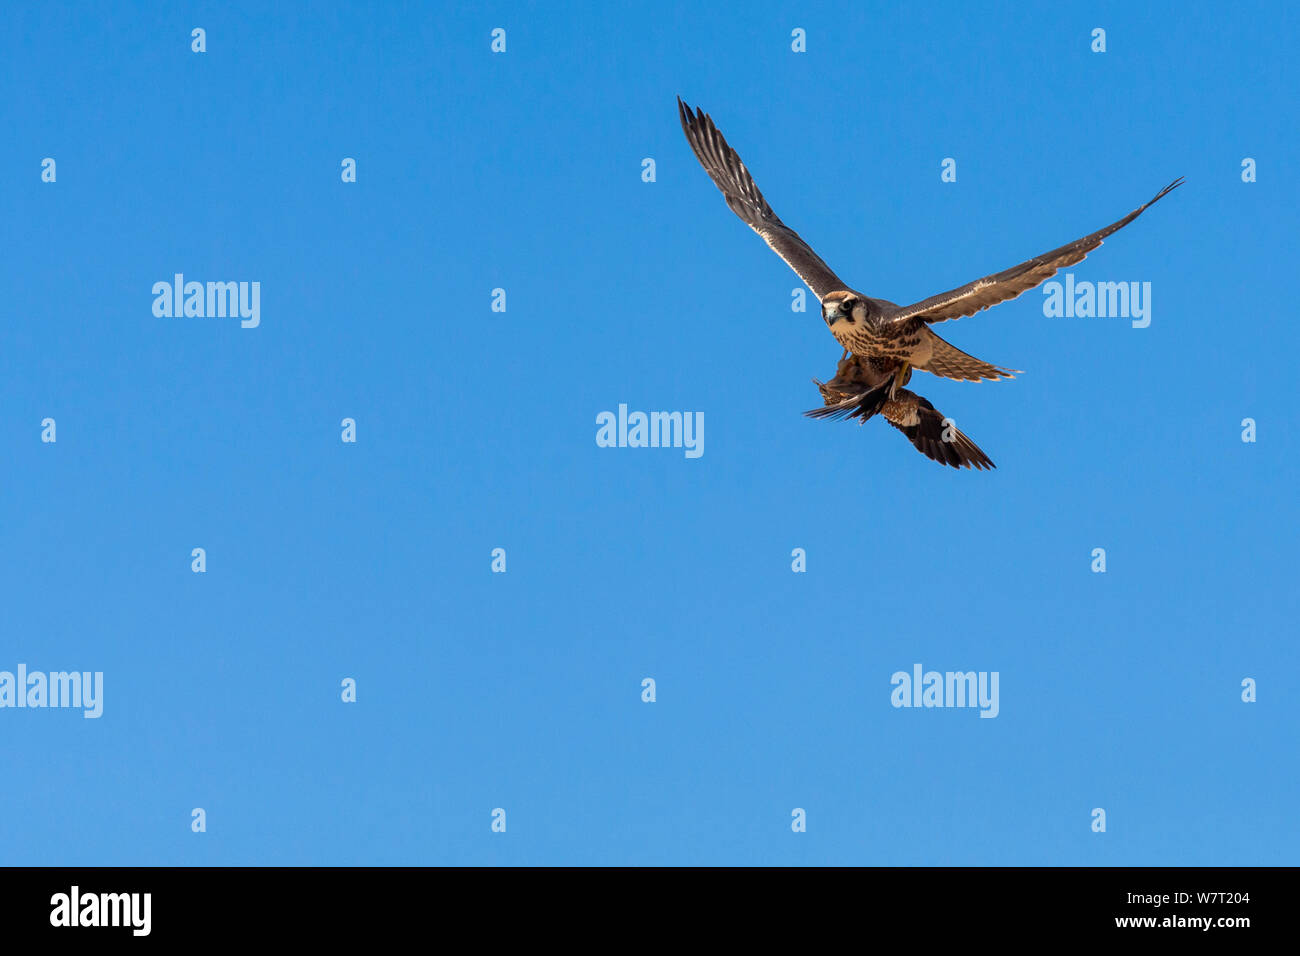 Lanner falcon (Falco biarmicus) in flight, carrying sandgrouse prey, Kgalagadi Transfrontier Park, South Africa, February. Stock Photo